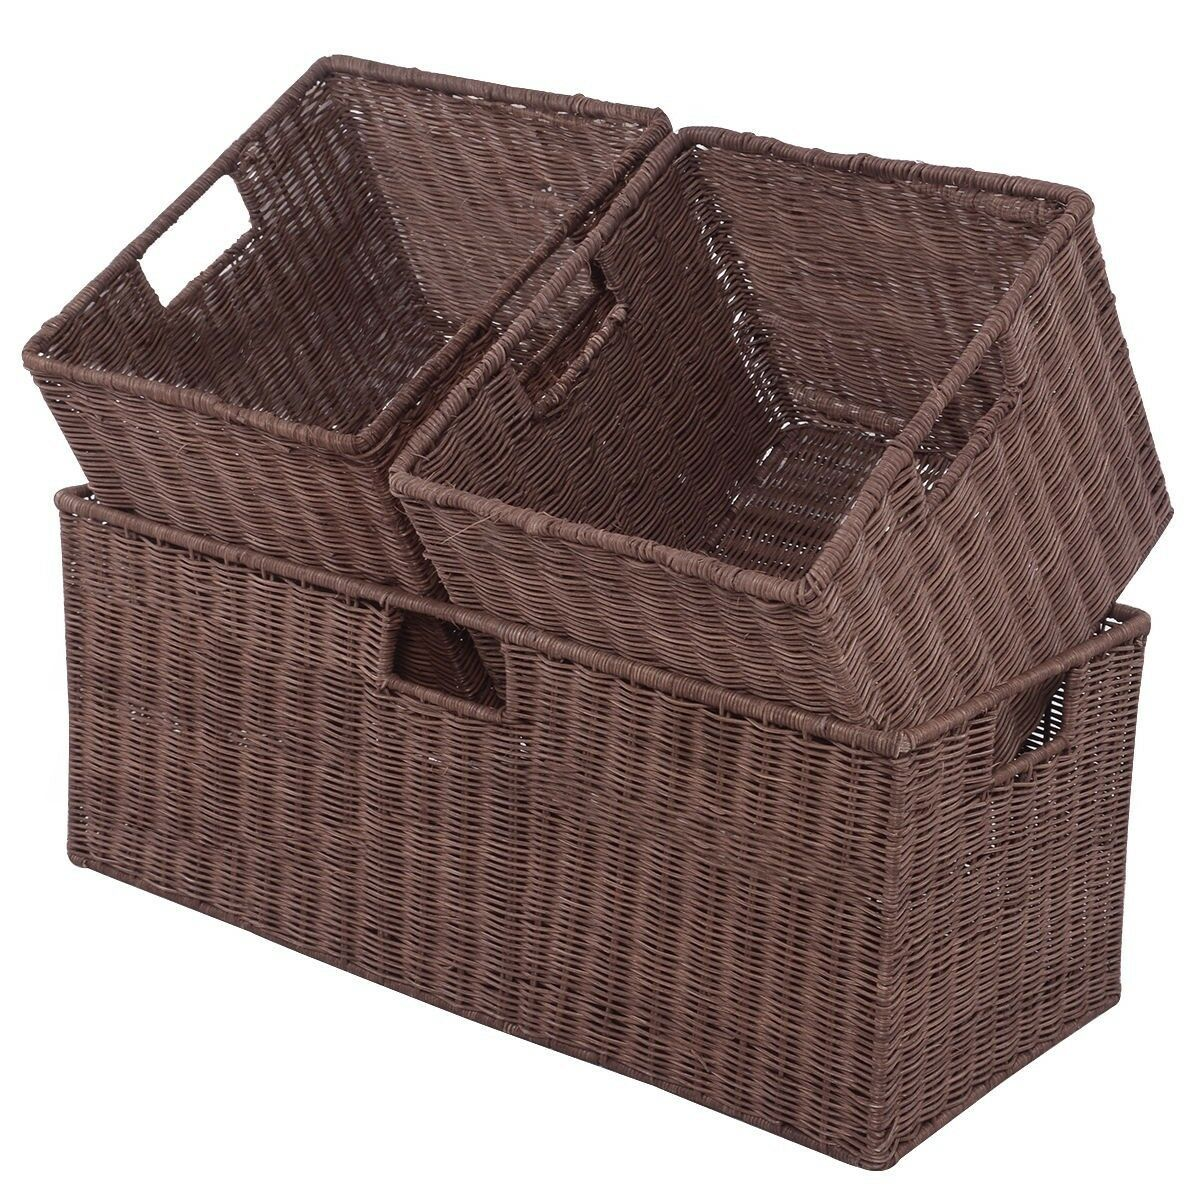 3PCS Nesting Rectangular Cube Rattan Storage Baskets Container 2 Large 1 Small